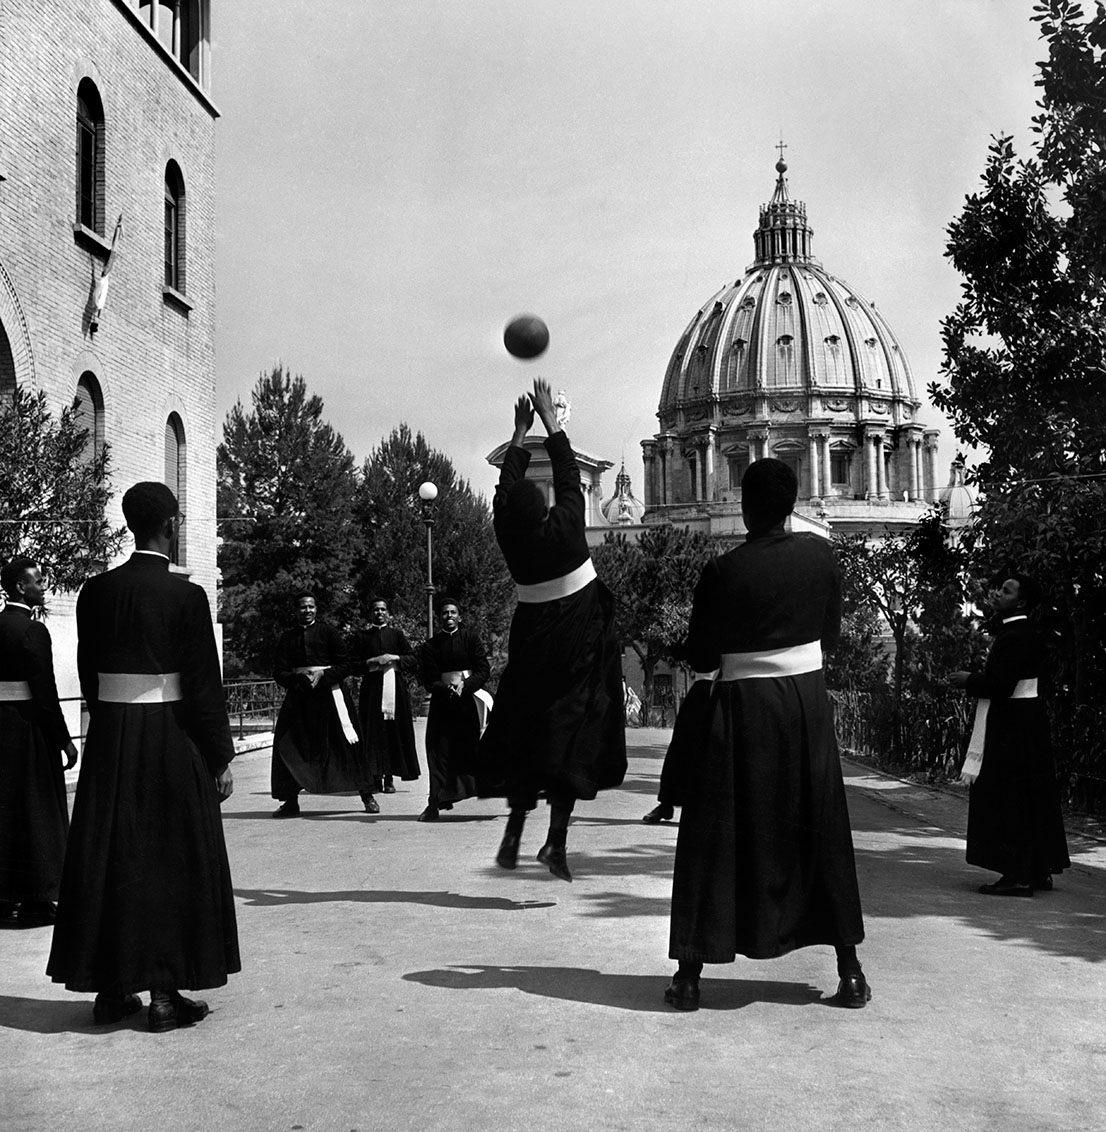 Vaticano, Italia, 1949. David Seymour / Magnum Photos